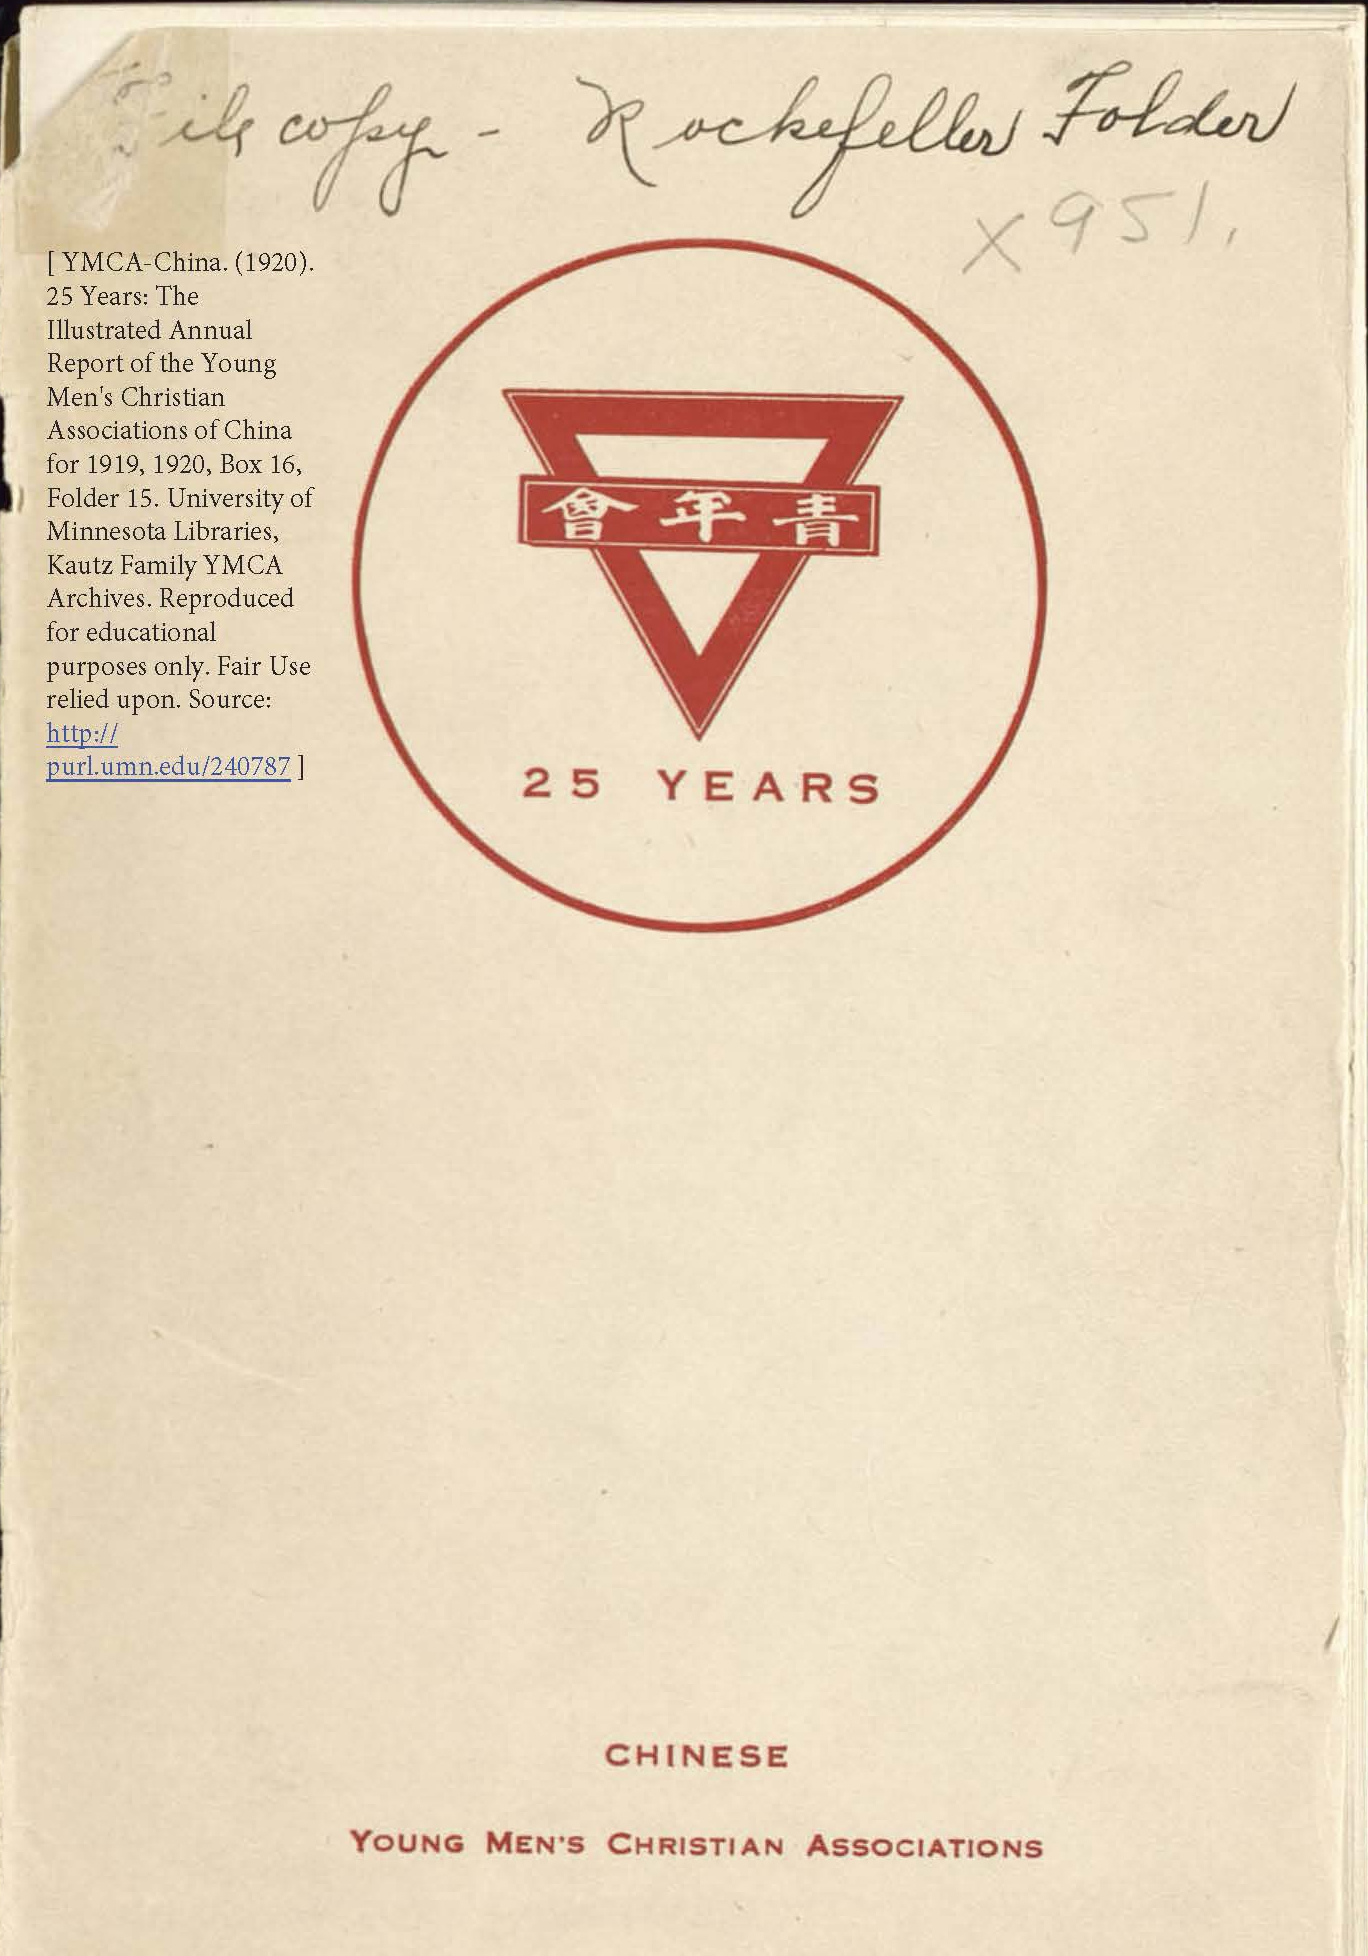 YMCA-China. (1920). ROCKEFELLER FOLDER, 25 Years: The Illustrated Annual Report of the Young Men's Christian Associations of China for 1919, 1920, Box 16, Folder 15. University of Minnesota Libraries, Kautz Family YMCA Archives.